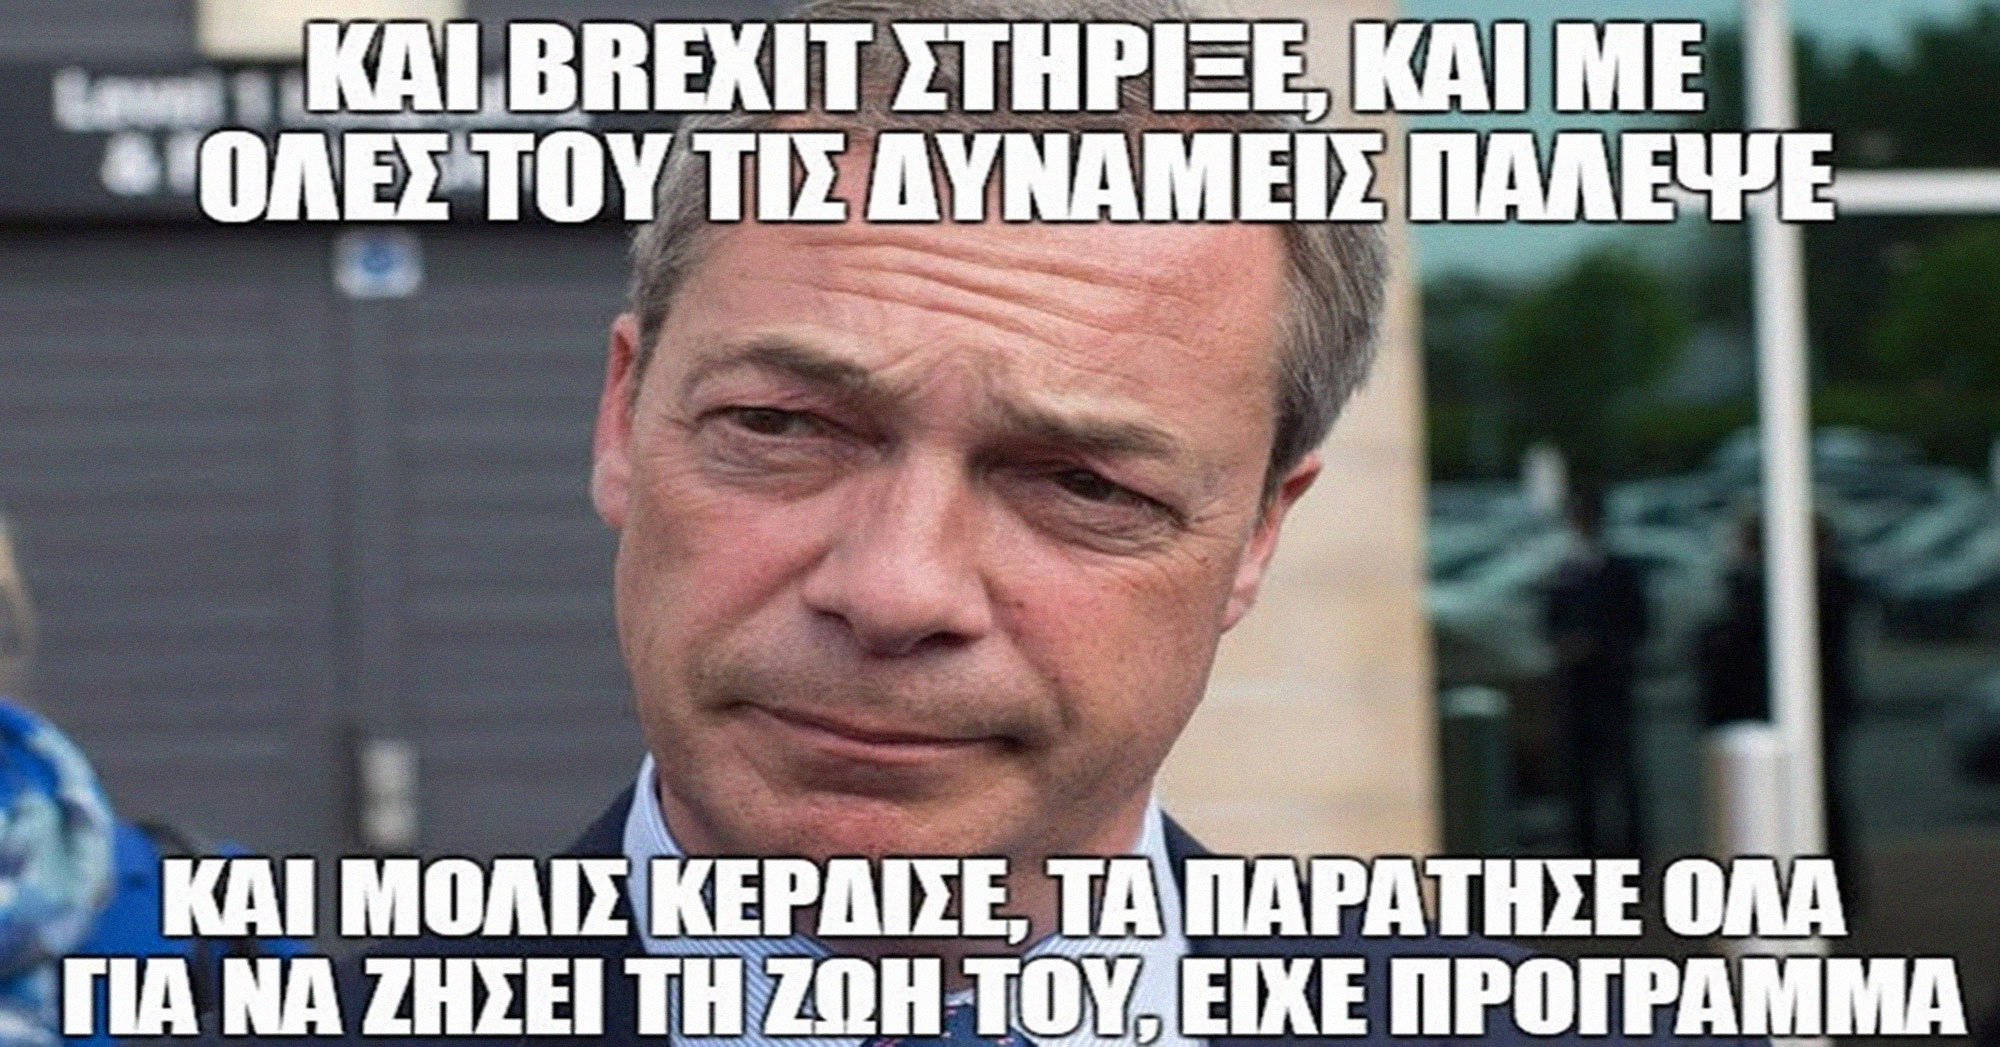 farage-meme-1